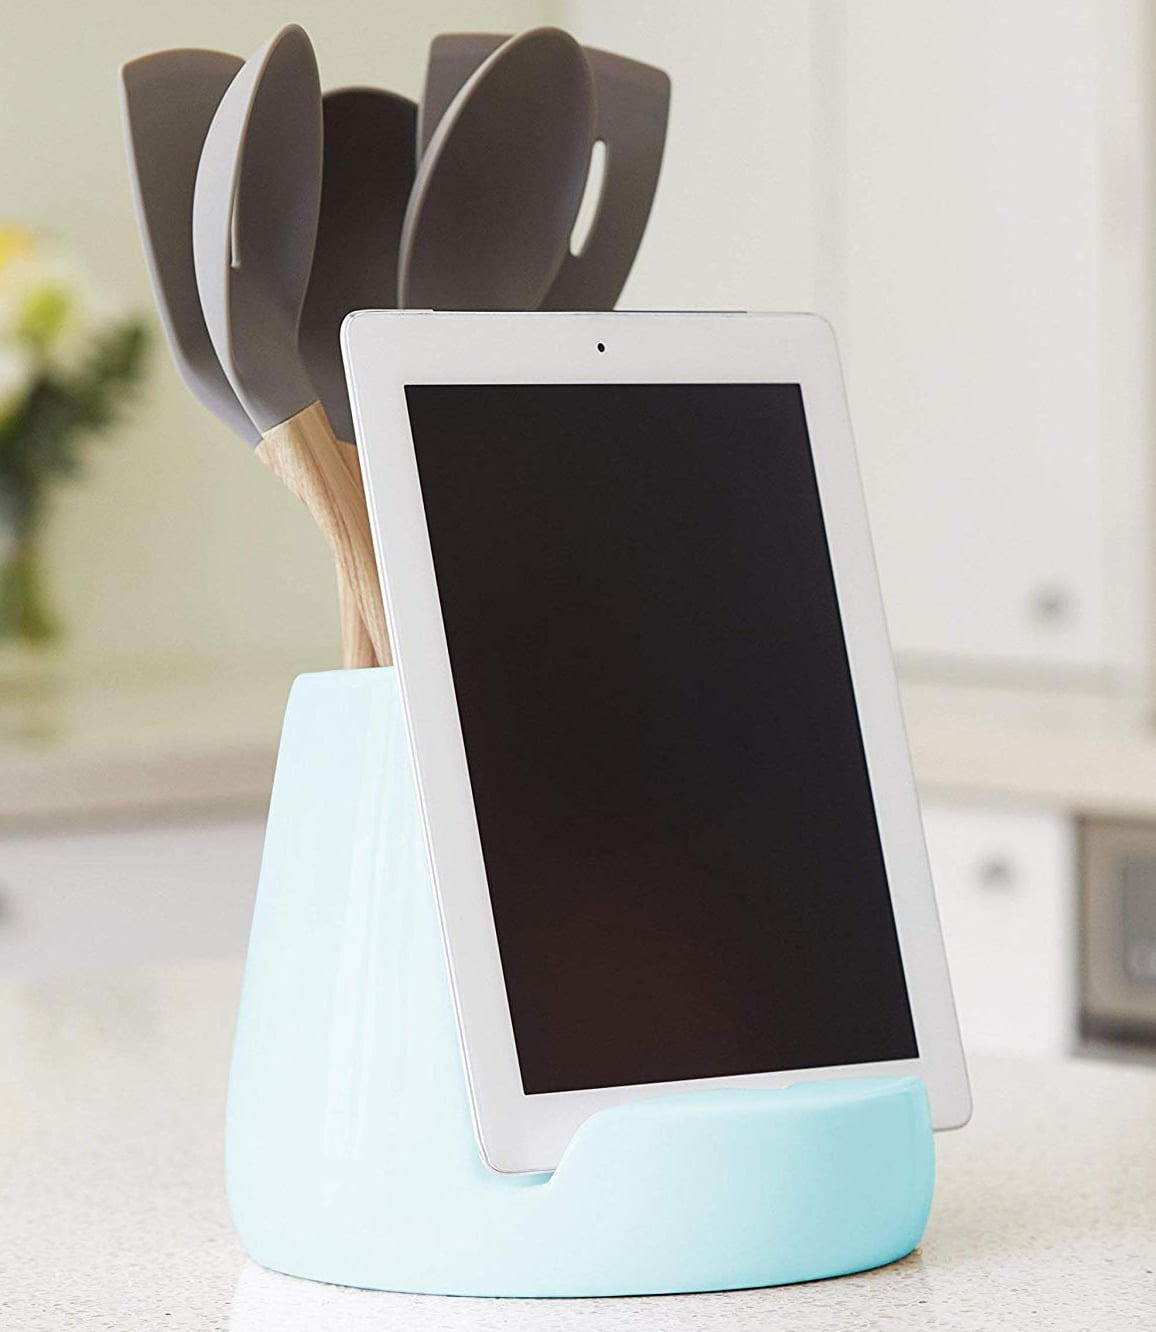 Awesome Ceramic Kitchen Ipad Stand And Utensil Holder 7 Gadgets Home Interior And Landscaping Palasignezvosmurscom